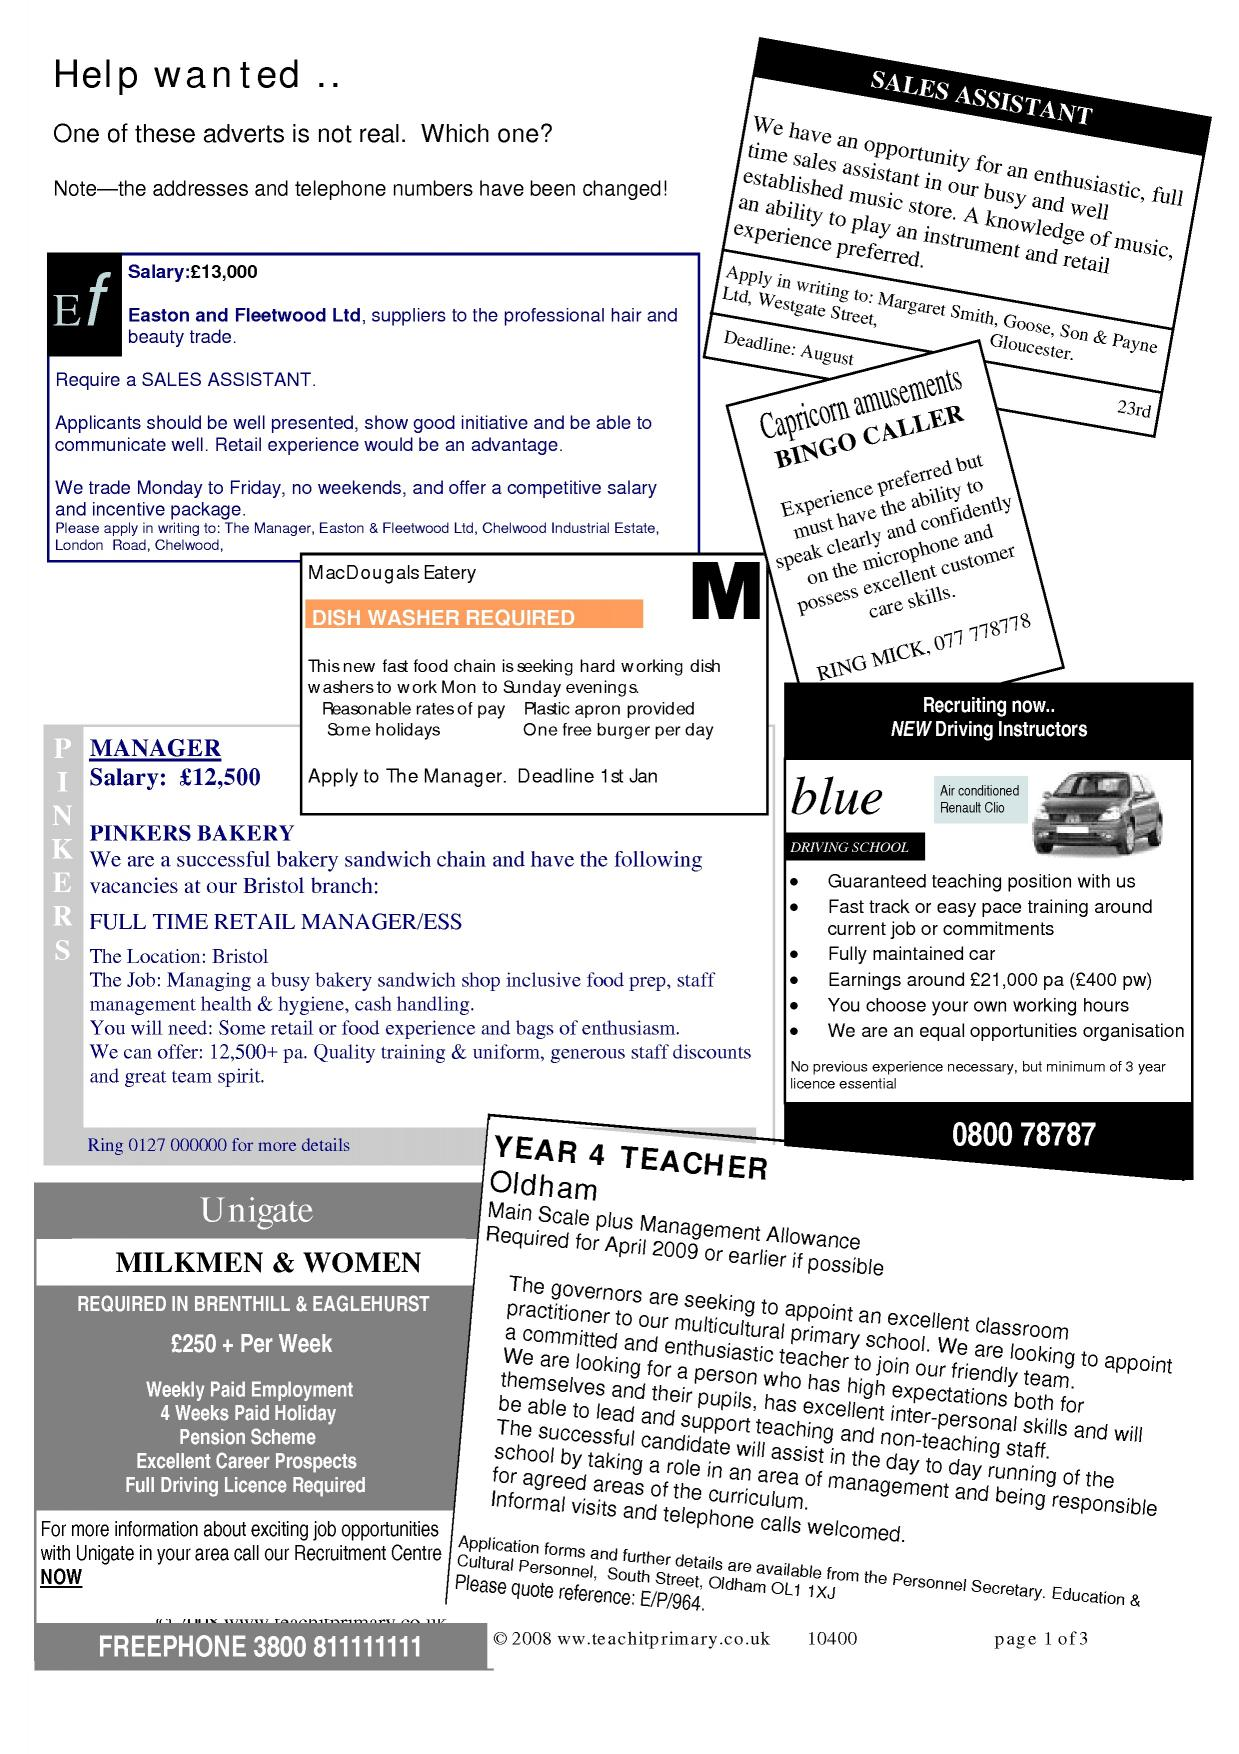 12223 Job Advert Examples Ks on for students, looking for, template.doc, esl sample, for personal assitant, for librarians, unusual headteacher,